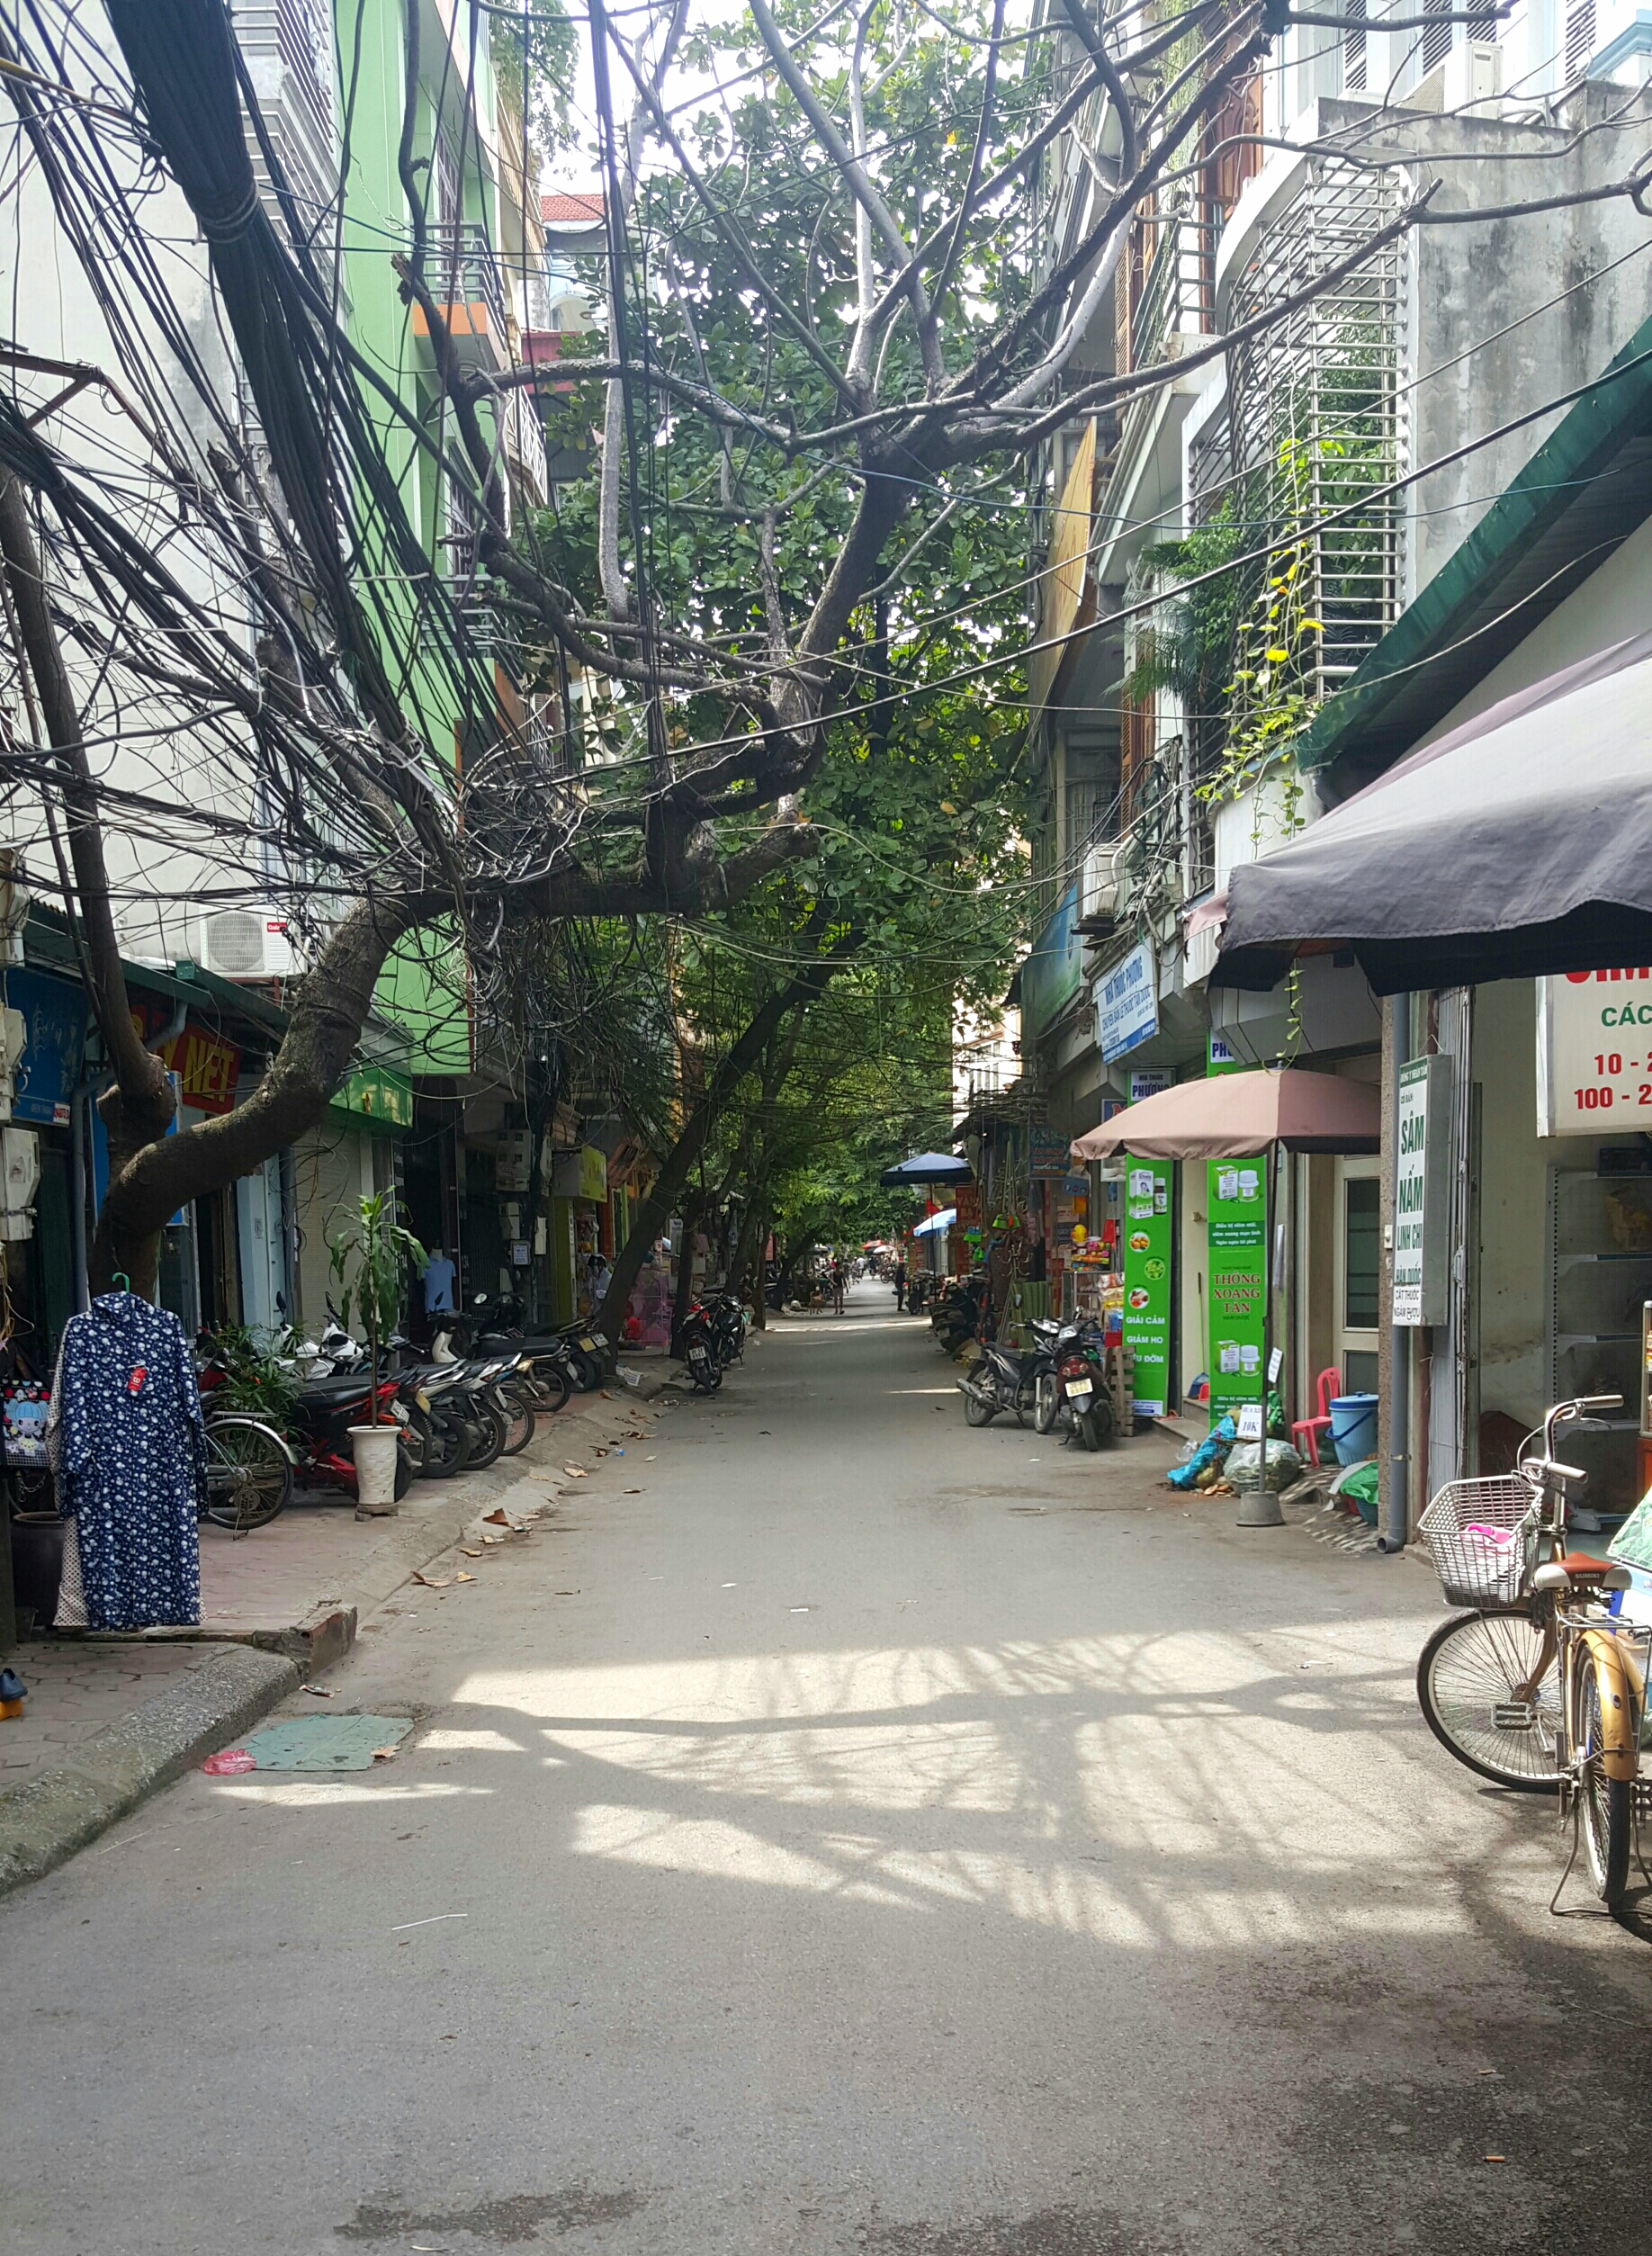 The view down a street where several Vietnam TEFL interns live on their i-to-i internship